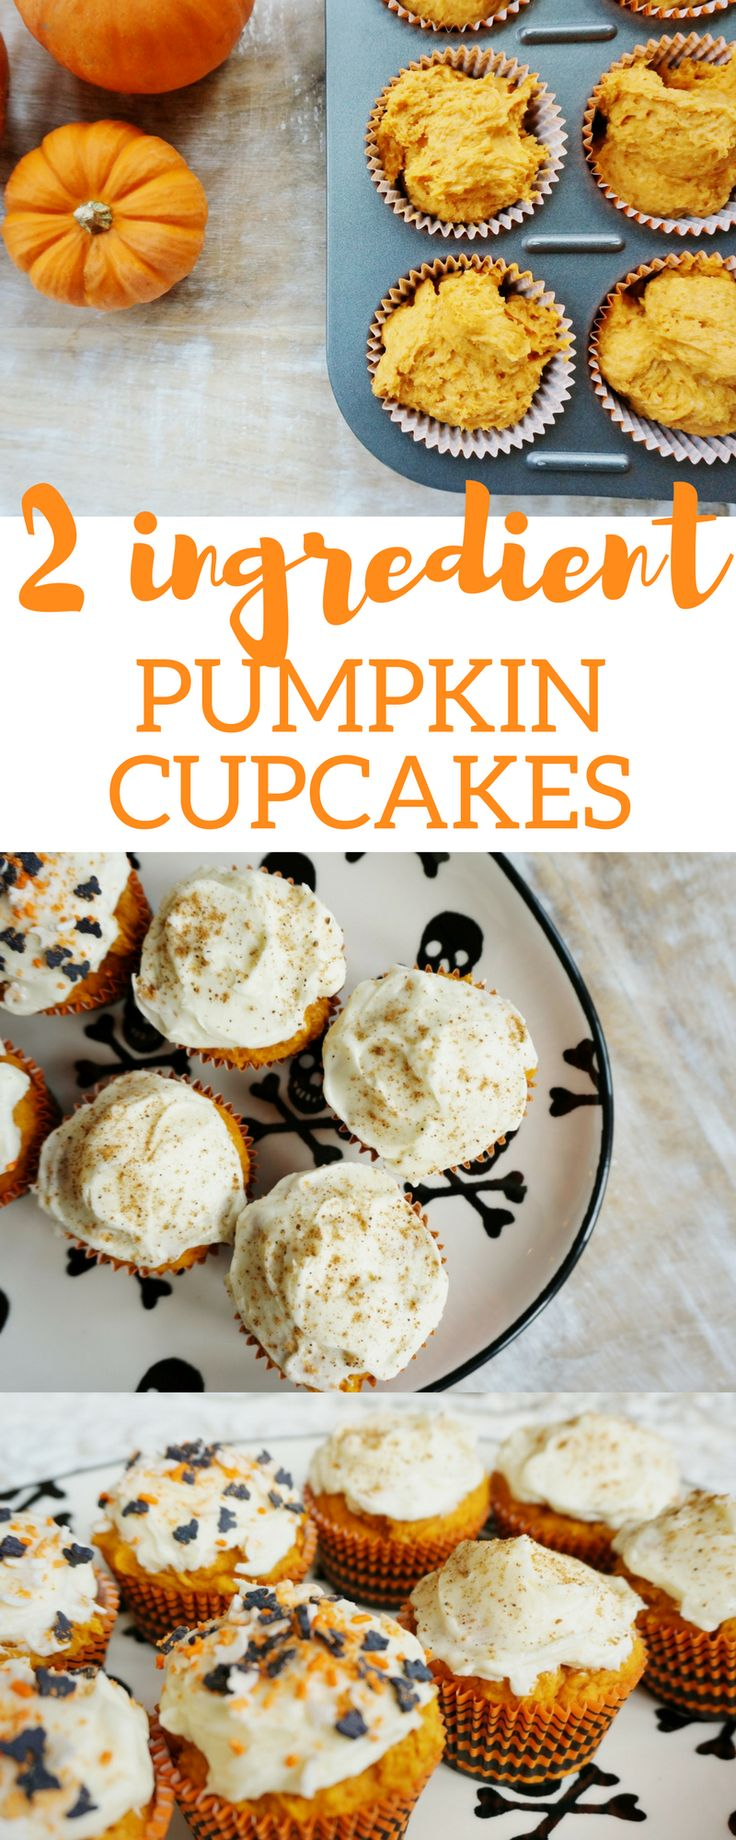 Quick + Easy Pumpkin Cupcakes - my kind of sweet // fall recipes // desserts